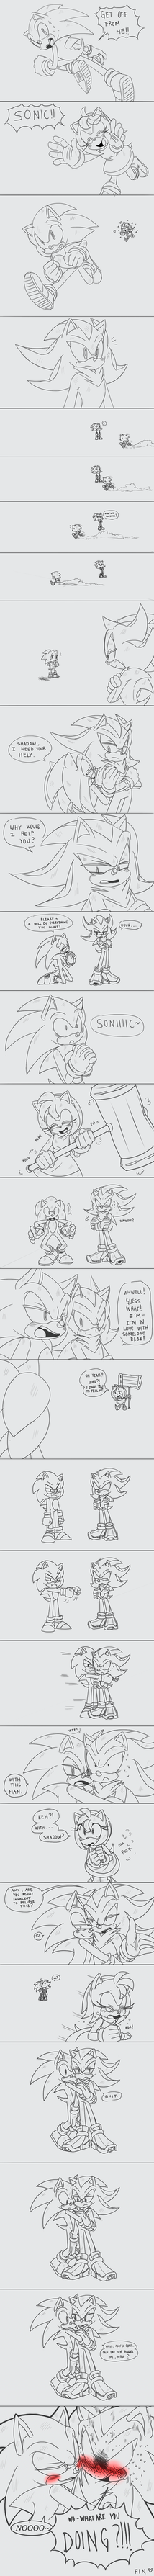 + How to ship Sonic and Shadow + by ClassicMariposAzul